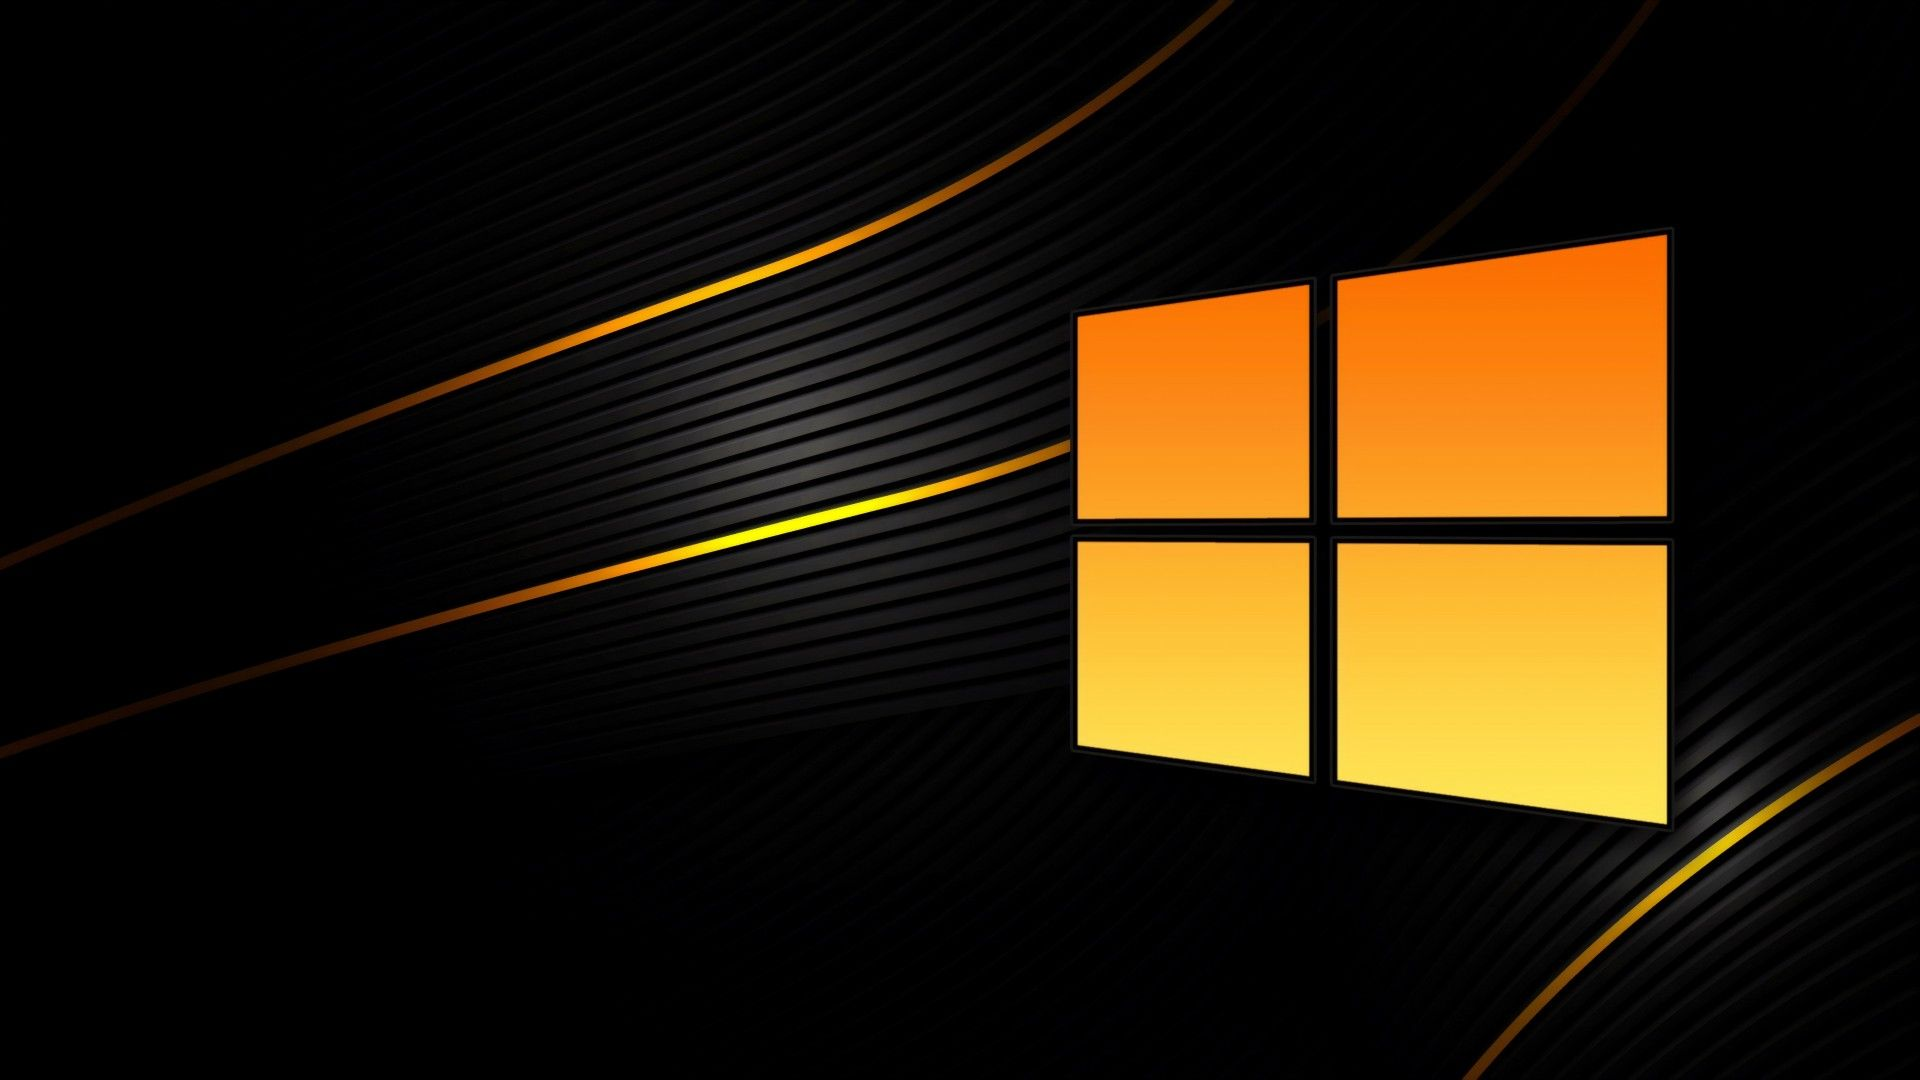 Windows 10 Black 1920x1080 4k Wallpapers For Pc Wallpaper Windows 10 Windows Wallpaper